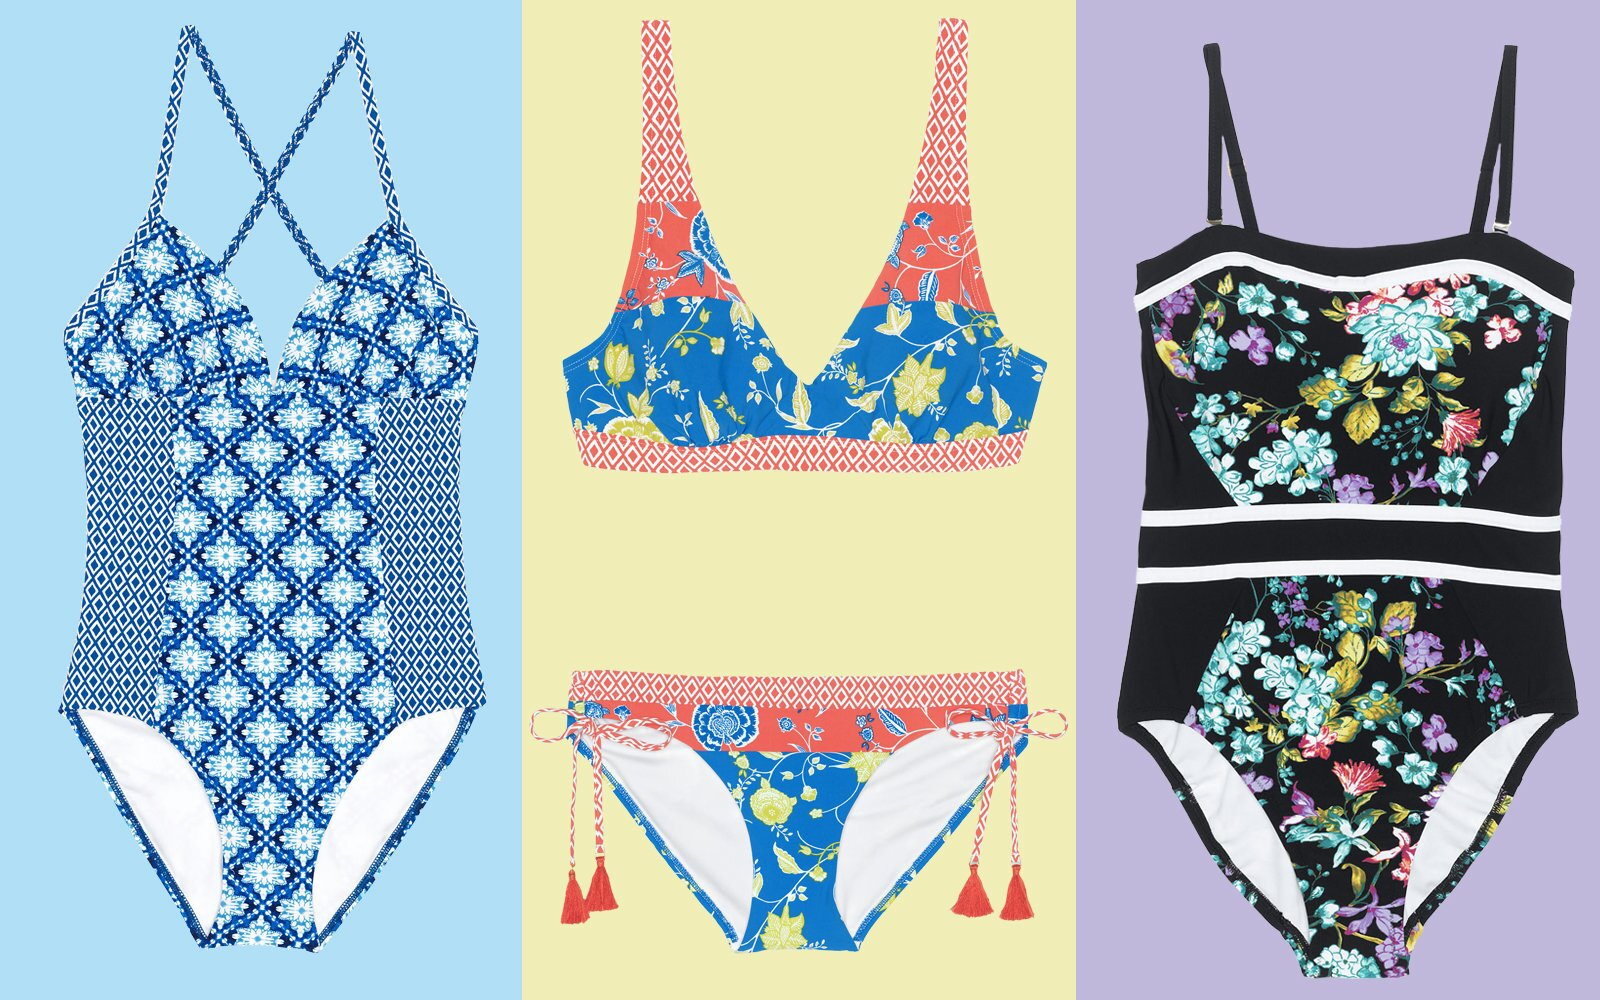 38595e5ceeed2 Lands' End Is Having a One-day Sale With 50% Off Swimwear | Travel + ...